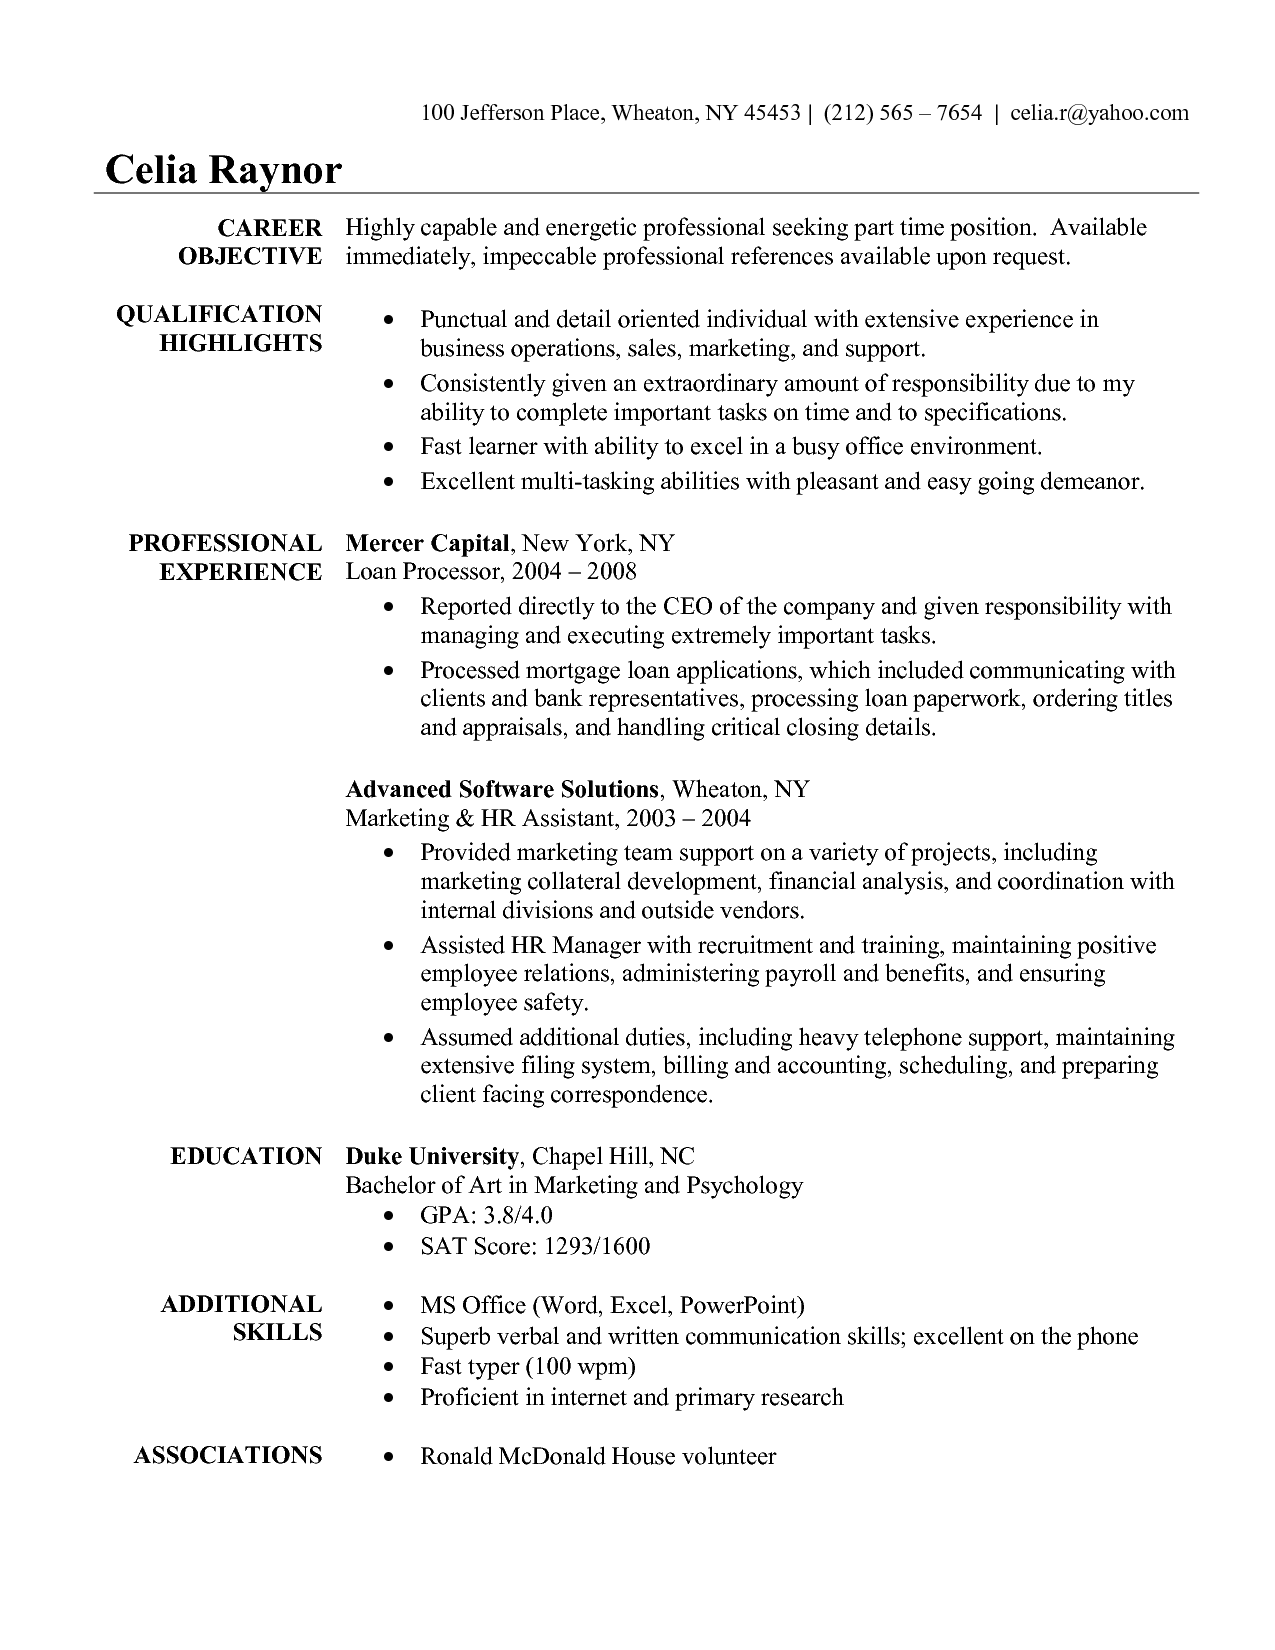 Resume Examples For Medical Assistant Resume Sample For Administrative Assistant Resume Samples For